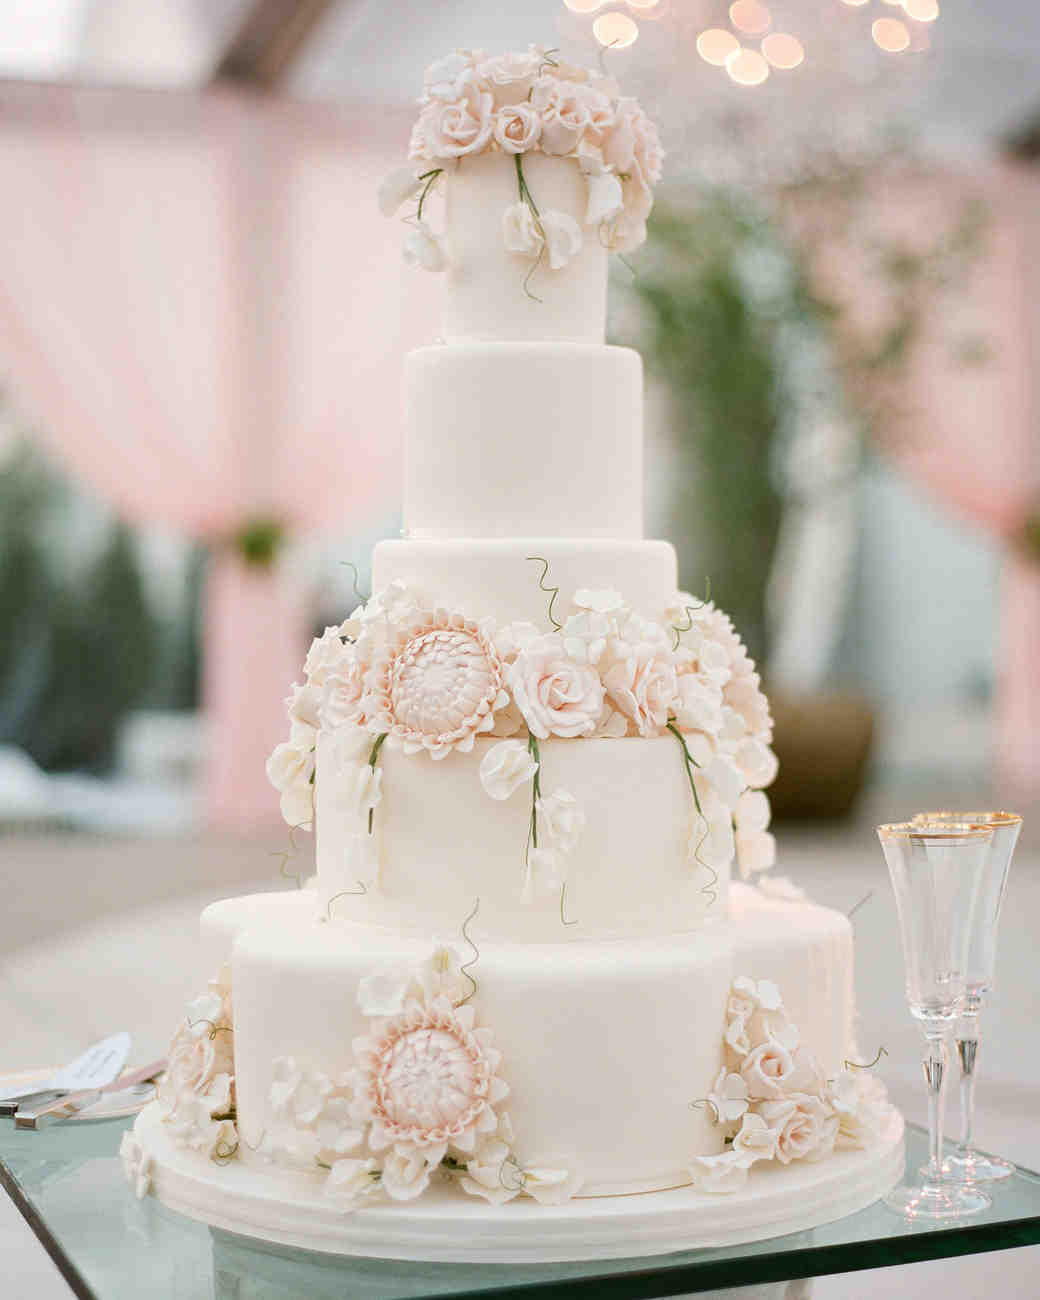 Wedding Cakes: 7 Delicious Vegan Wedding Cakes